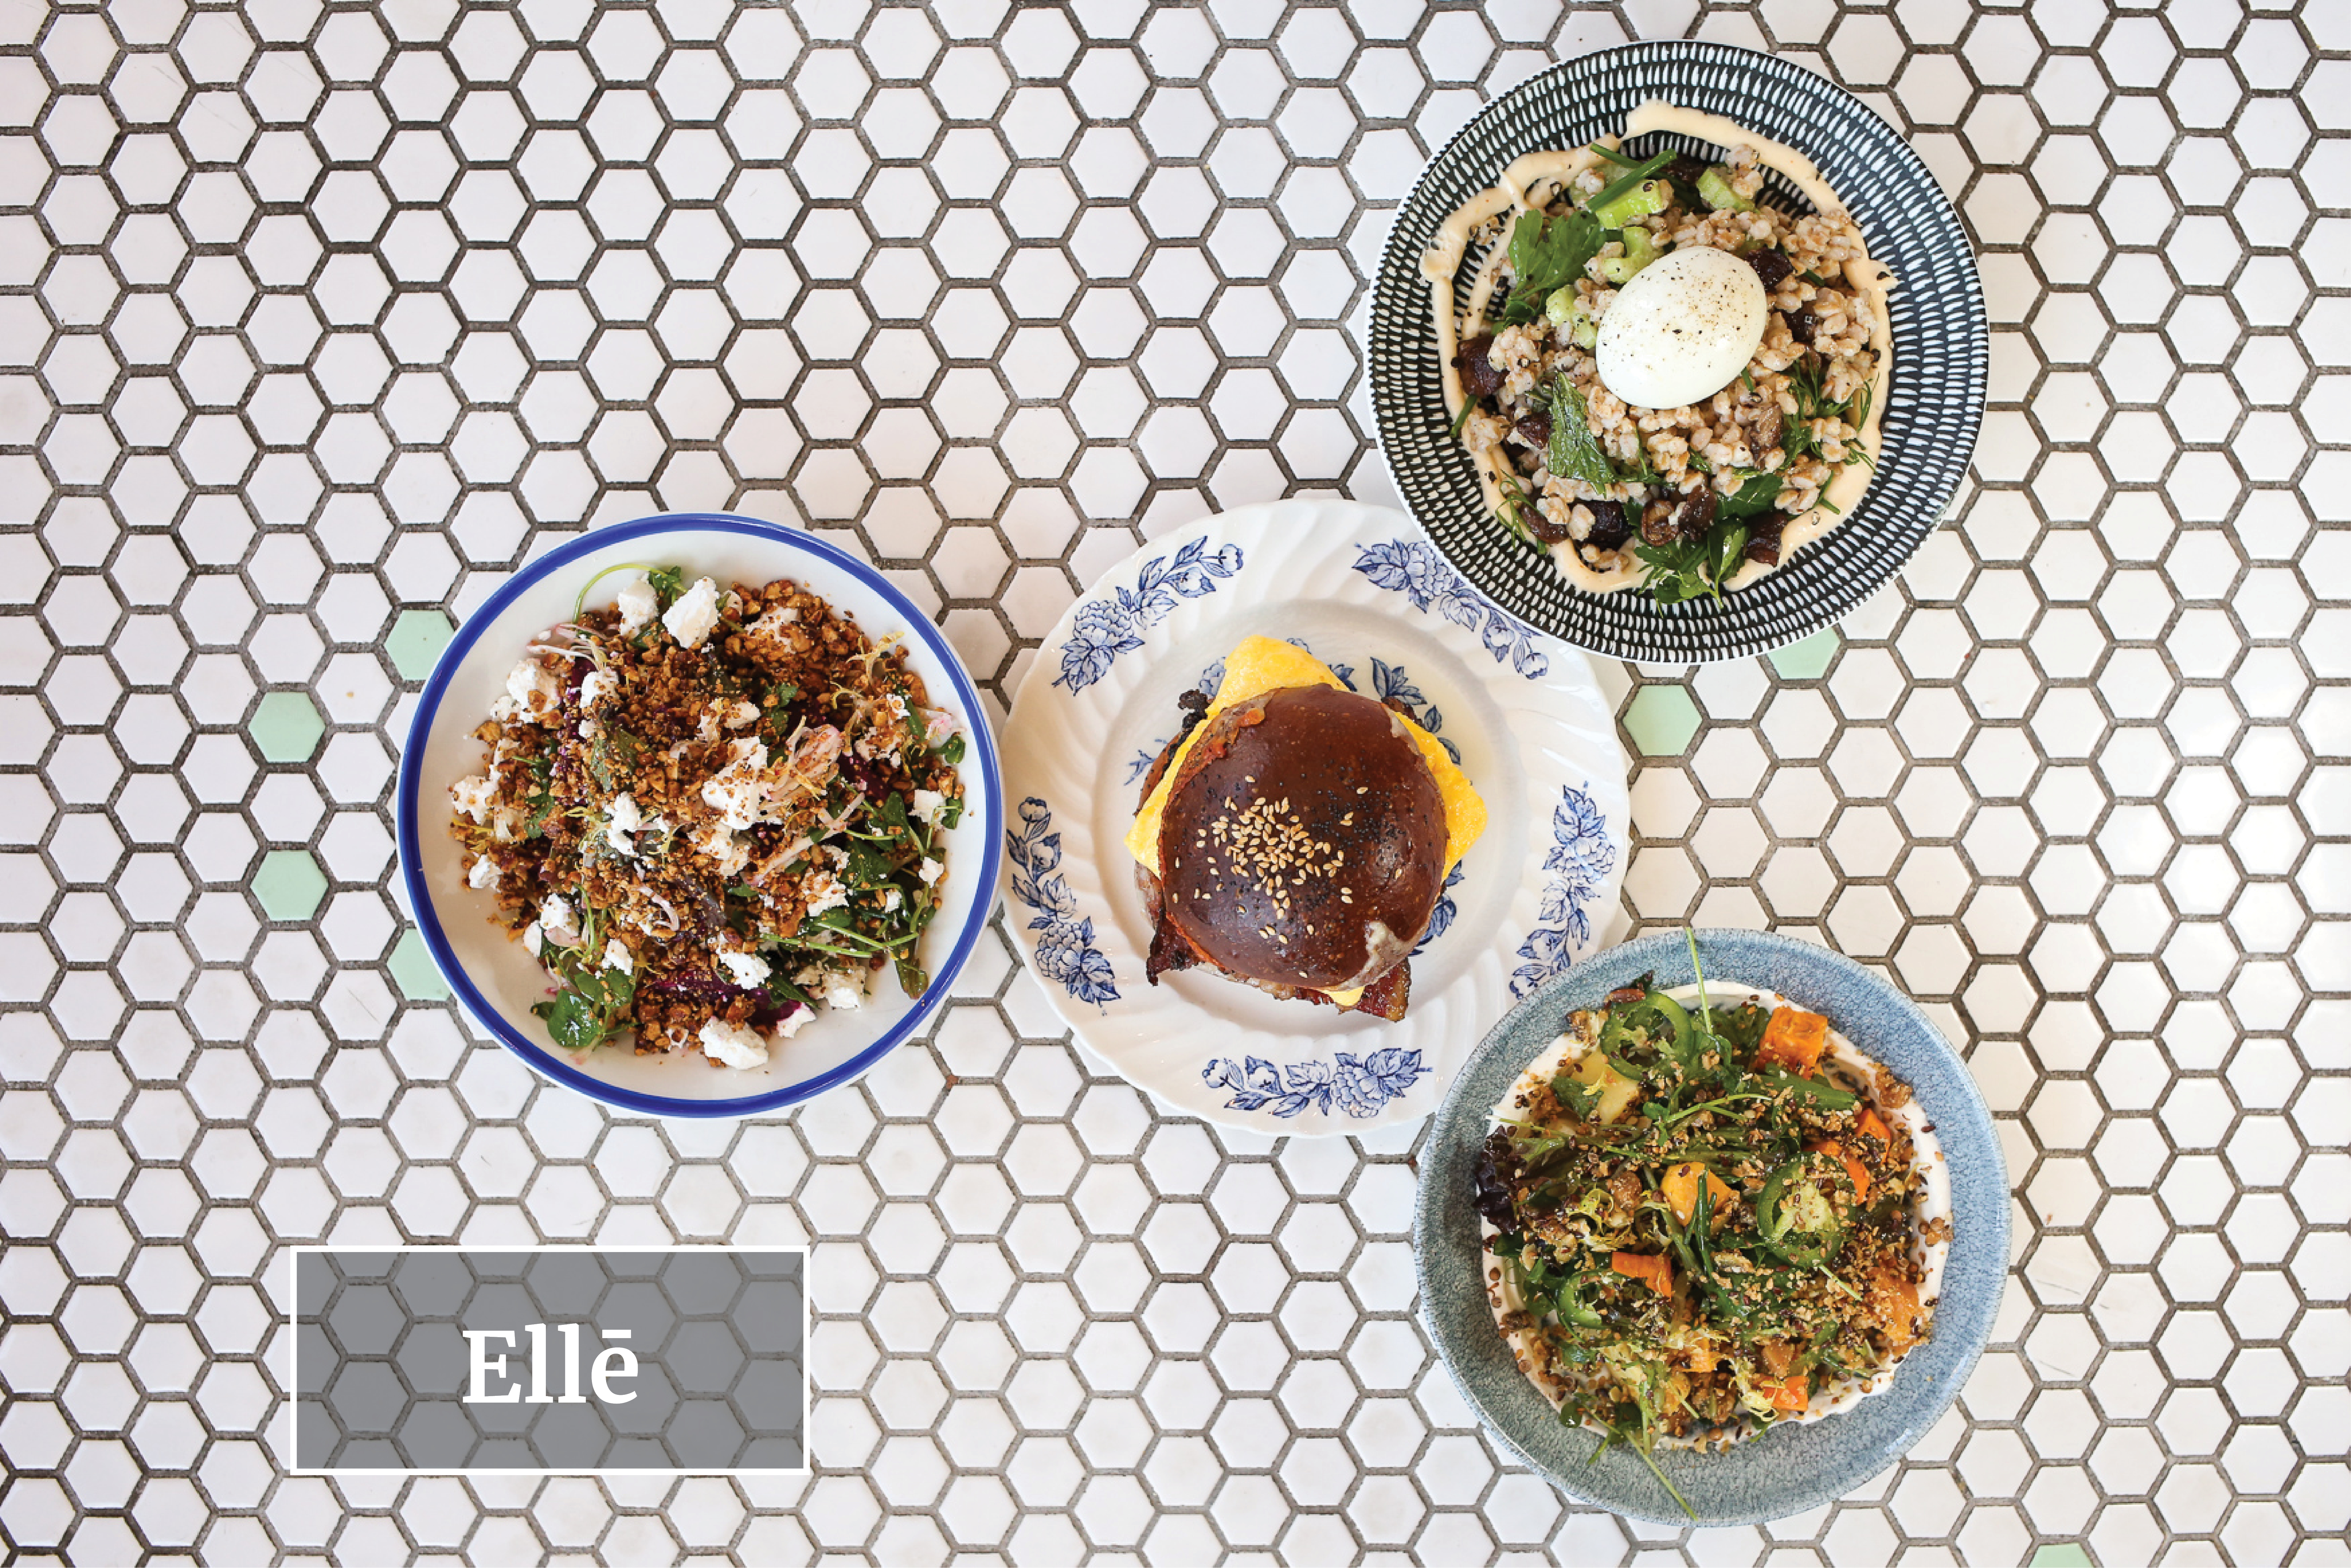 Elle is a semifinalist for Best New Restaurant. (Image: Amanda Andrade-Rhoades/ DC Refined)<p></p>